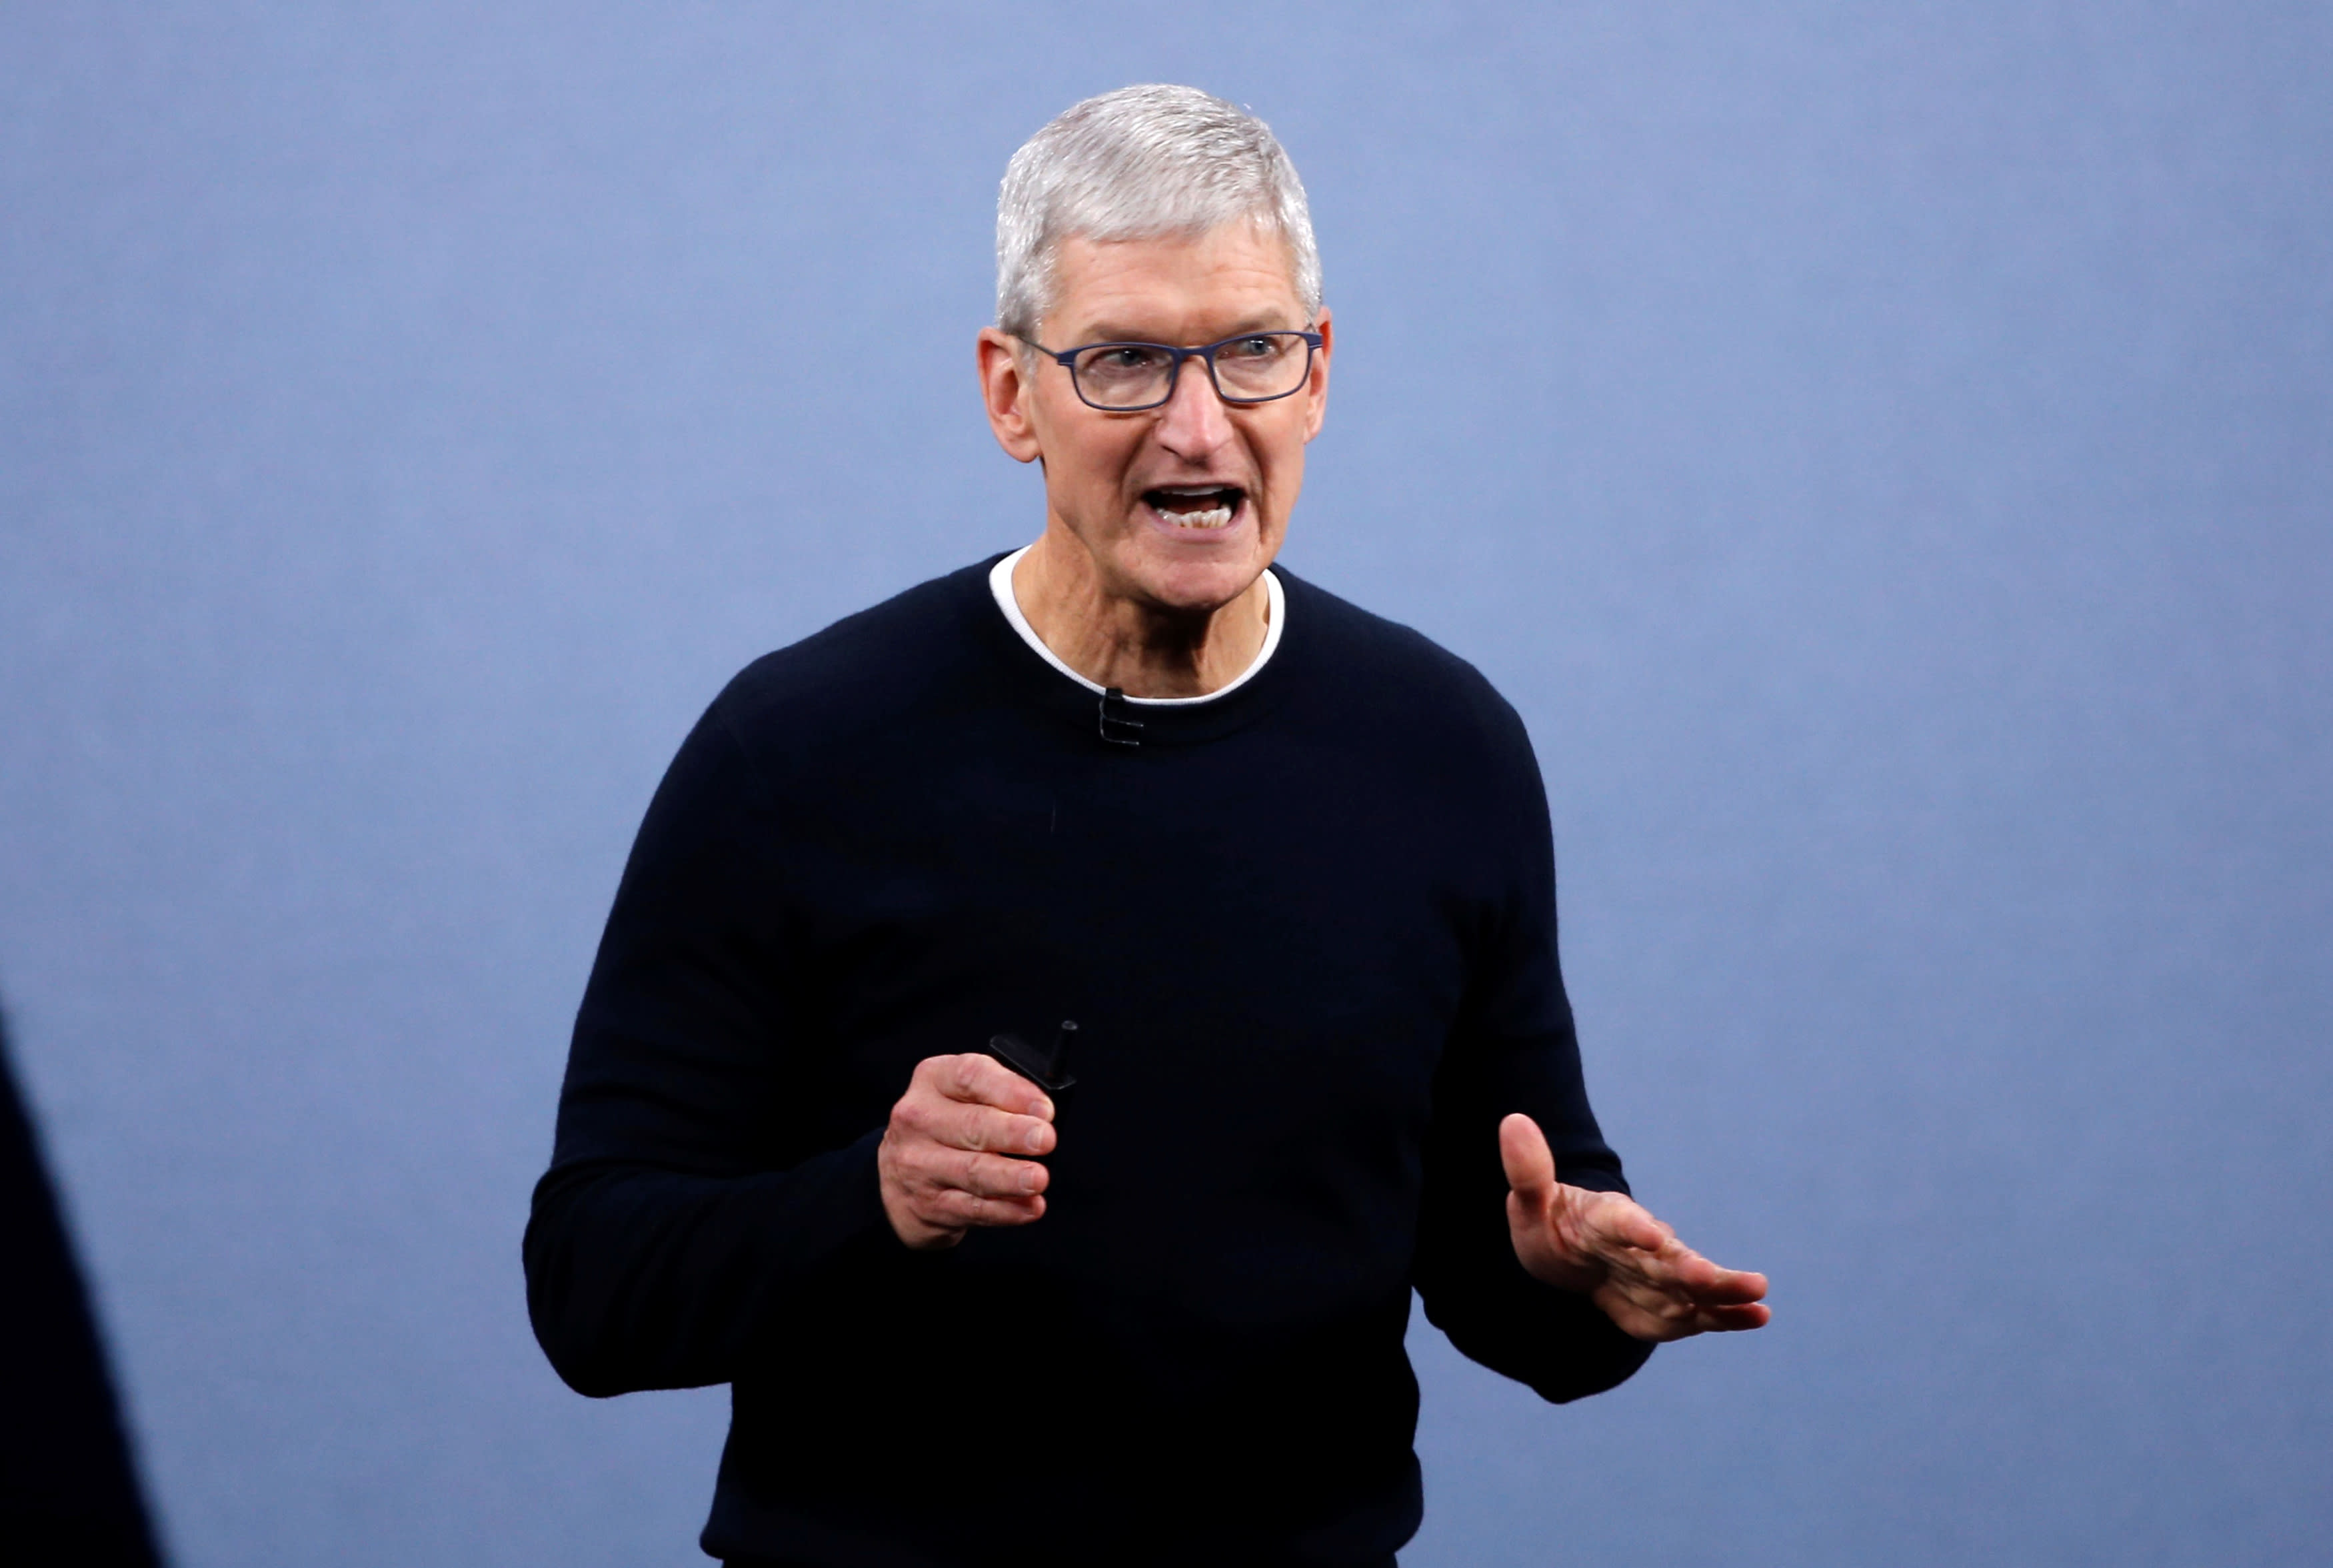 EU says Apple's App Store breaks competition rules after Spotify complaint